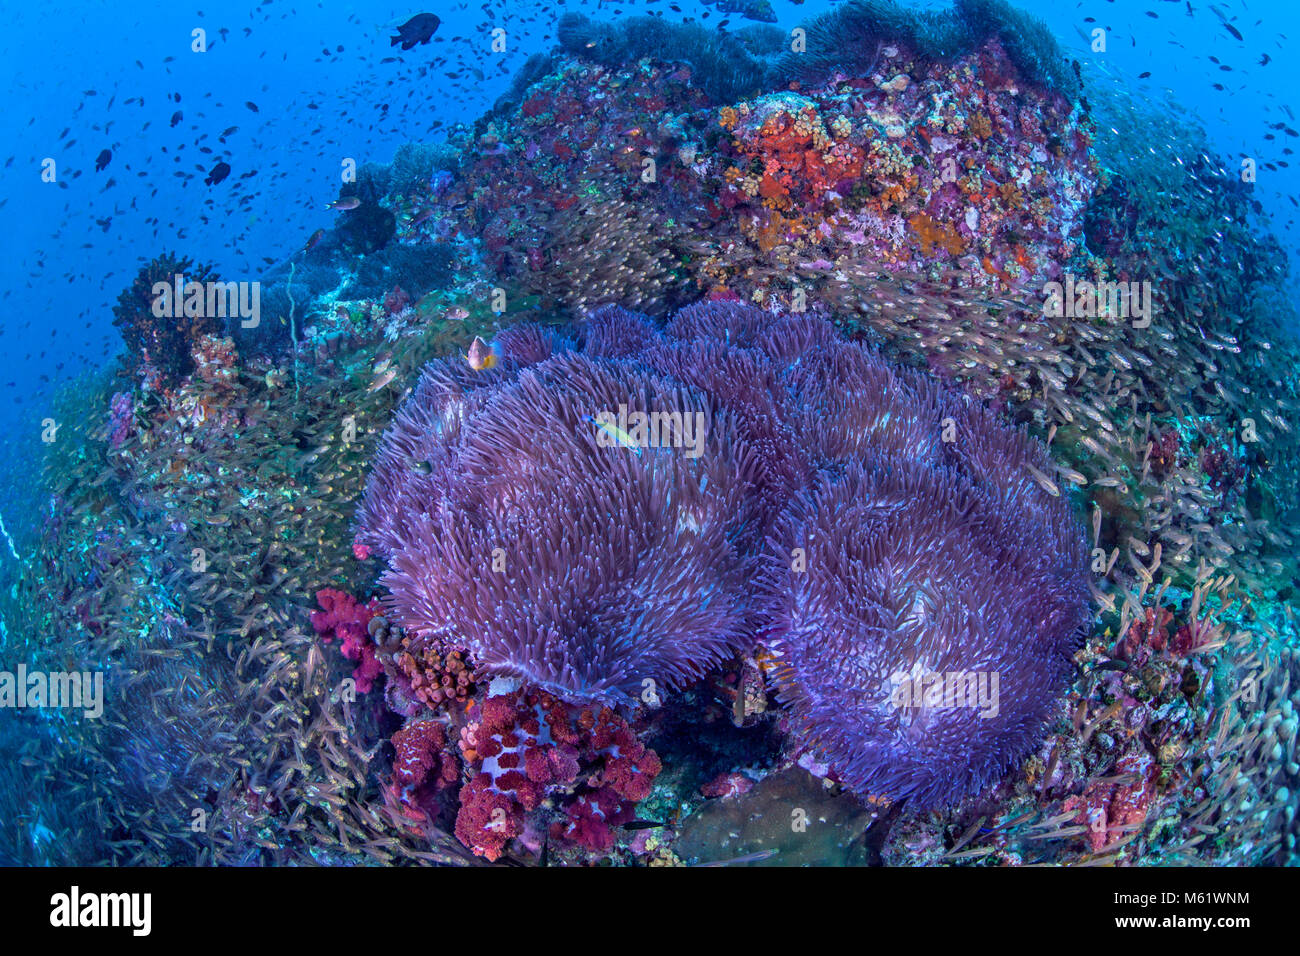 Glassfish swirl around bioluminescent anemones covering a coral reef on Richelieu Rock in the Andaman Sea off the - Stock Image